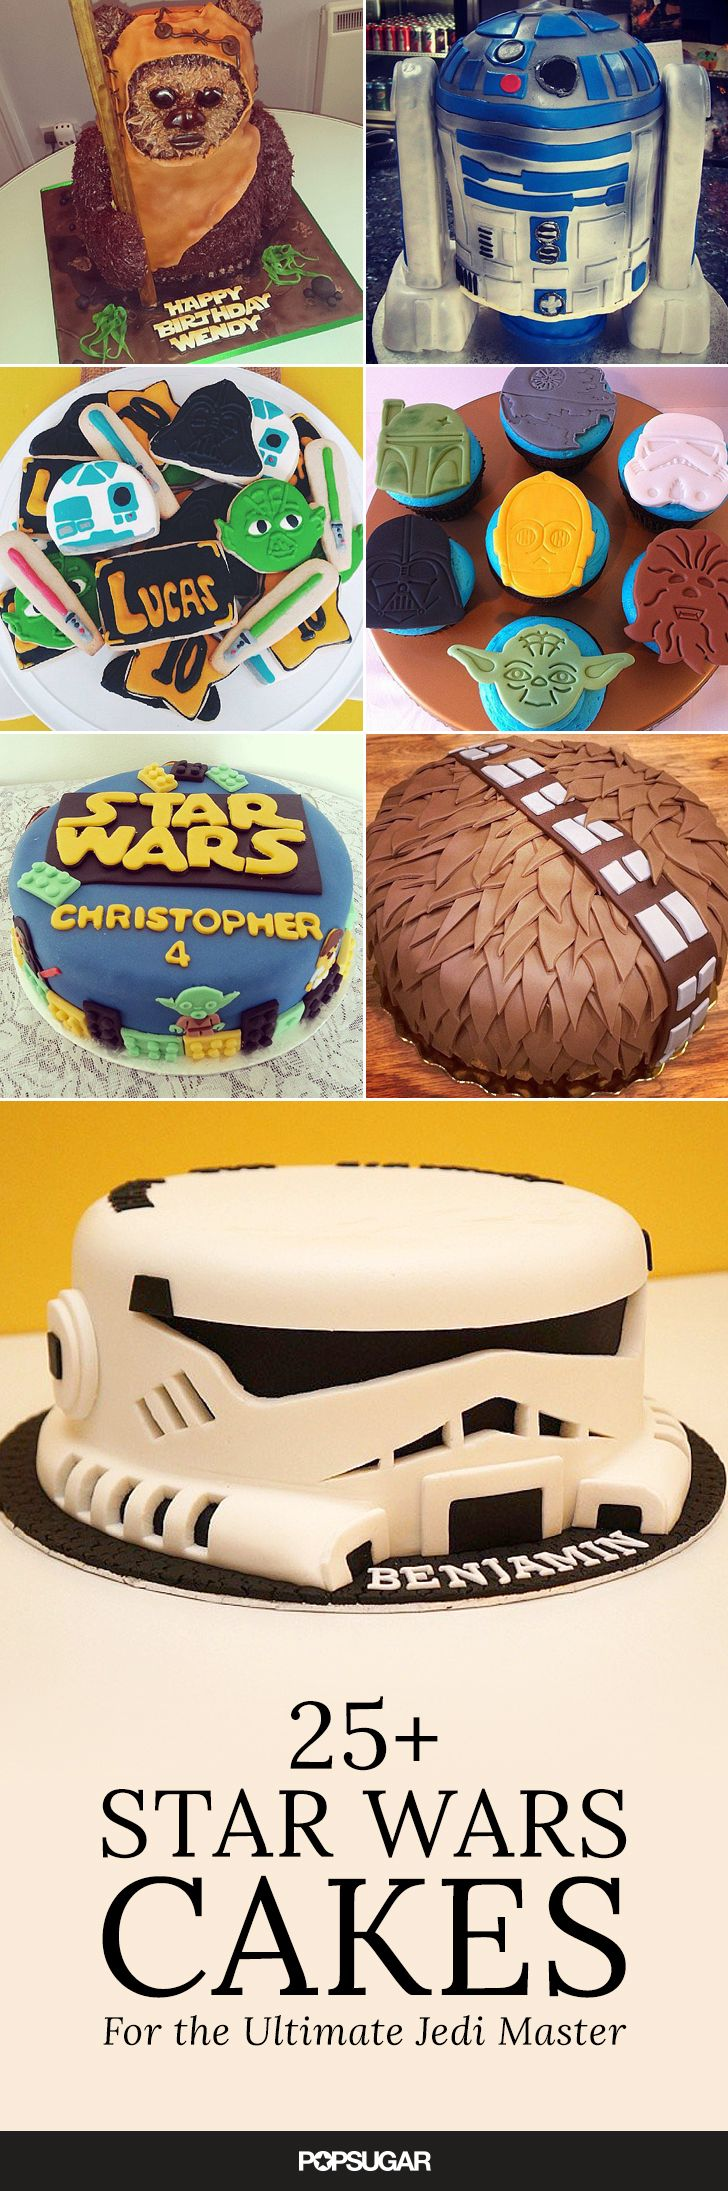 The most amazing Star Wars cakes for your kiddo's birthday party.